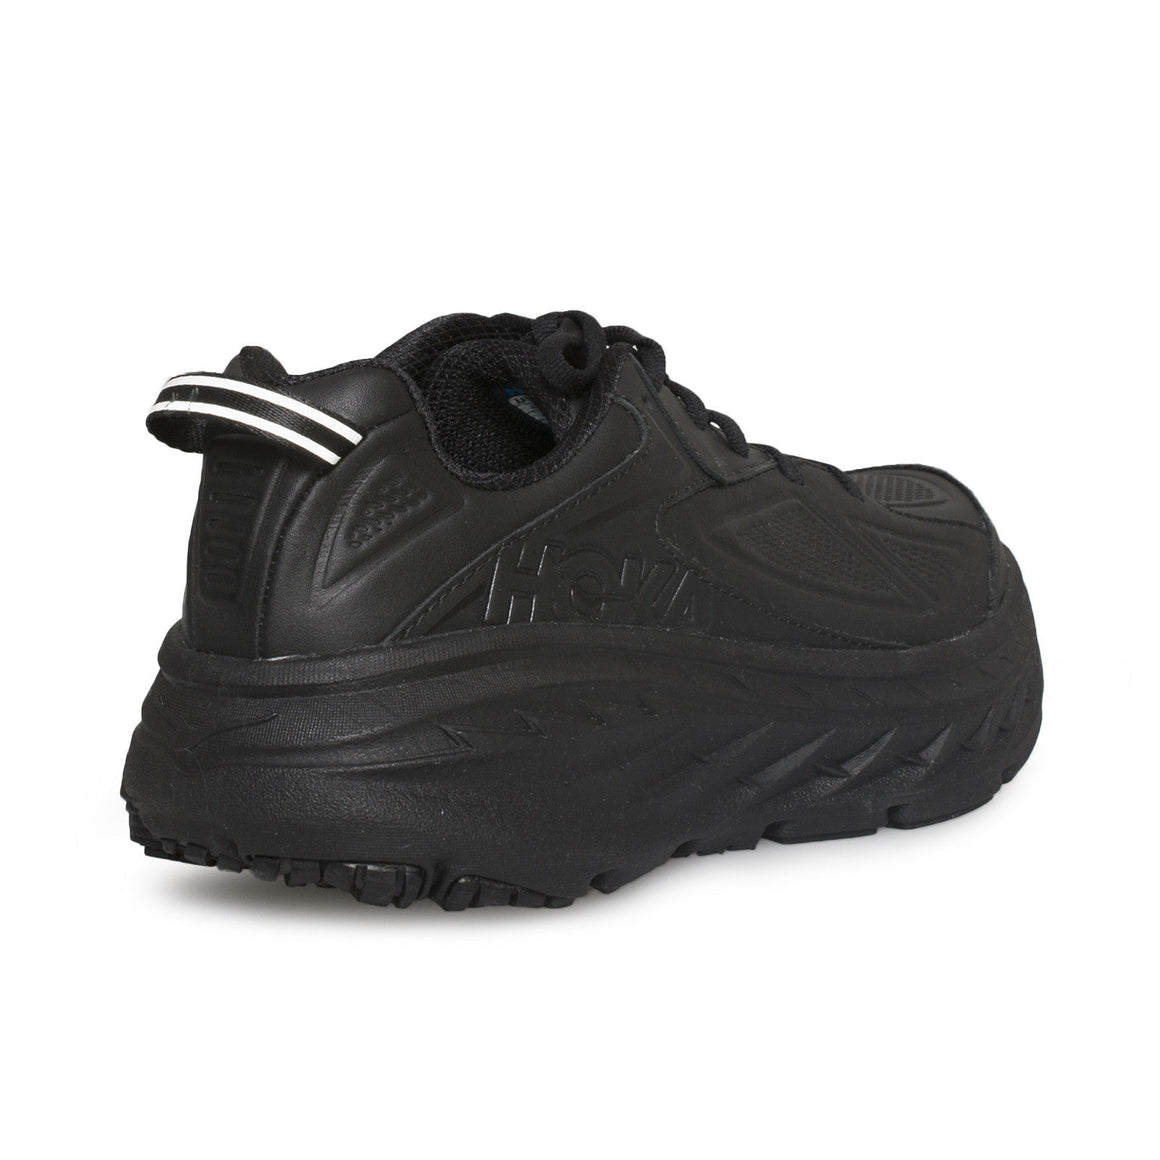 Hoka Bondi LTR Black Running Shoes